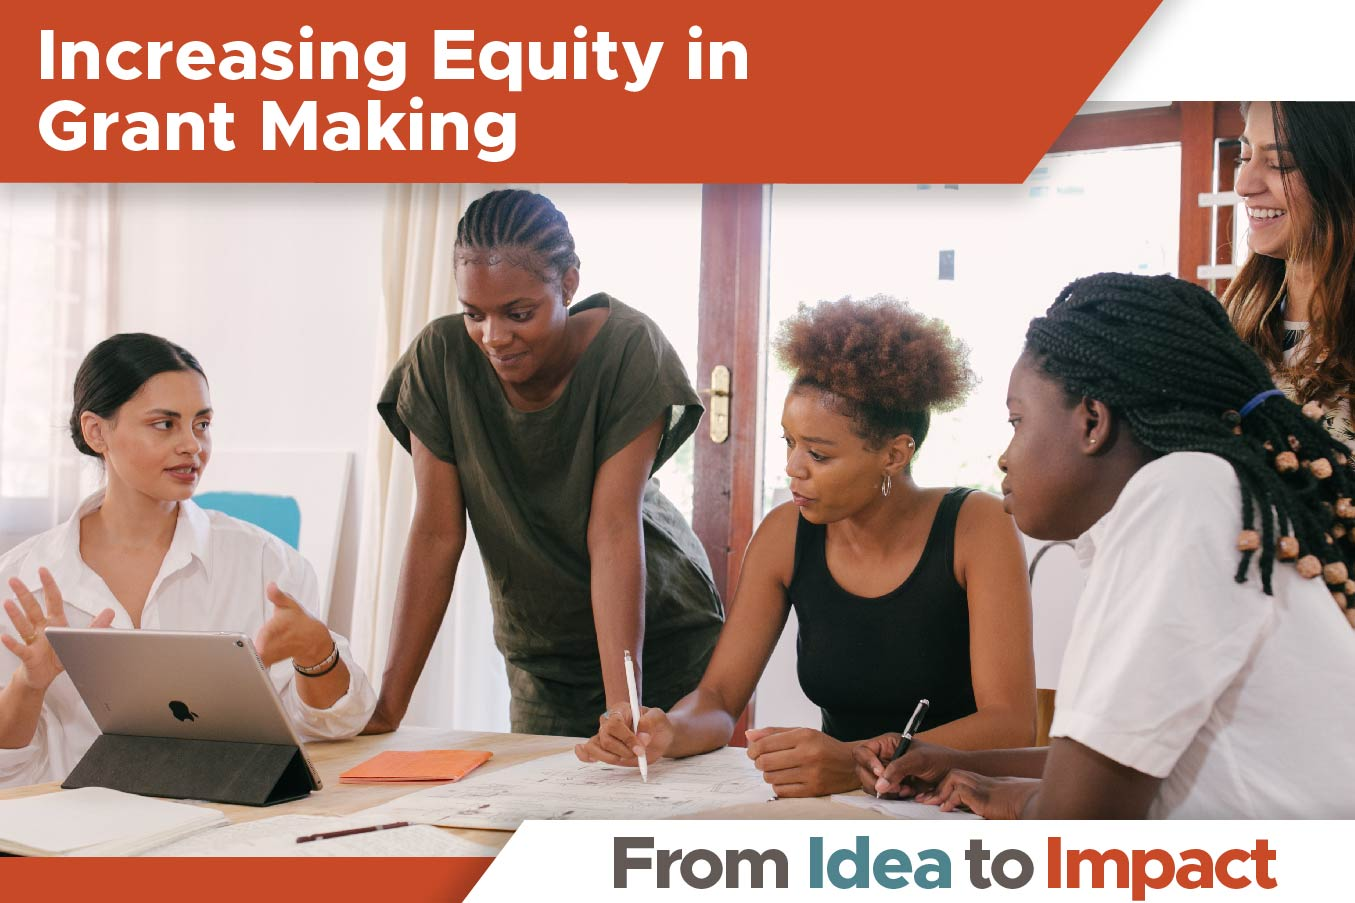 Increasing Equity in Grant Making